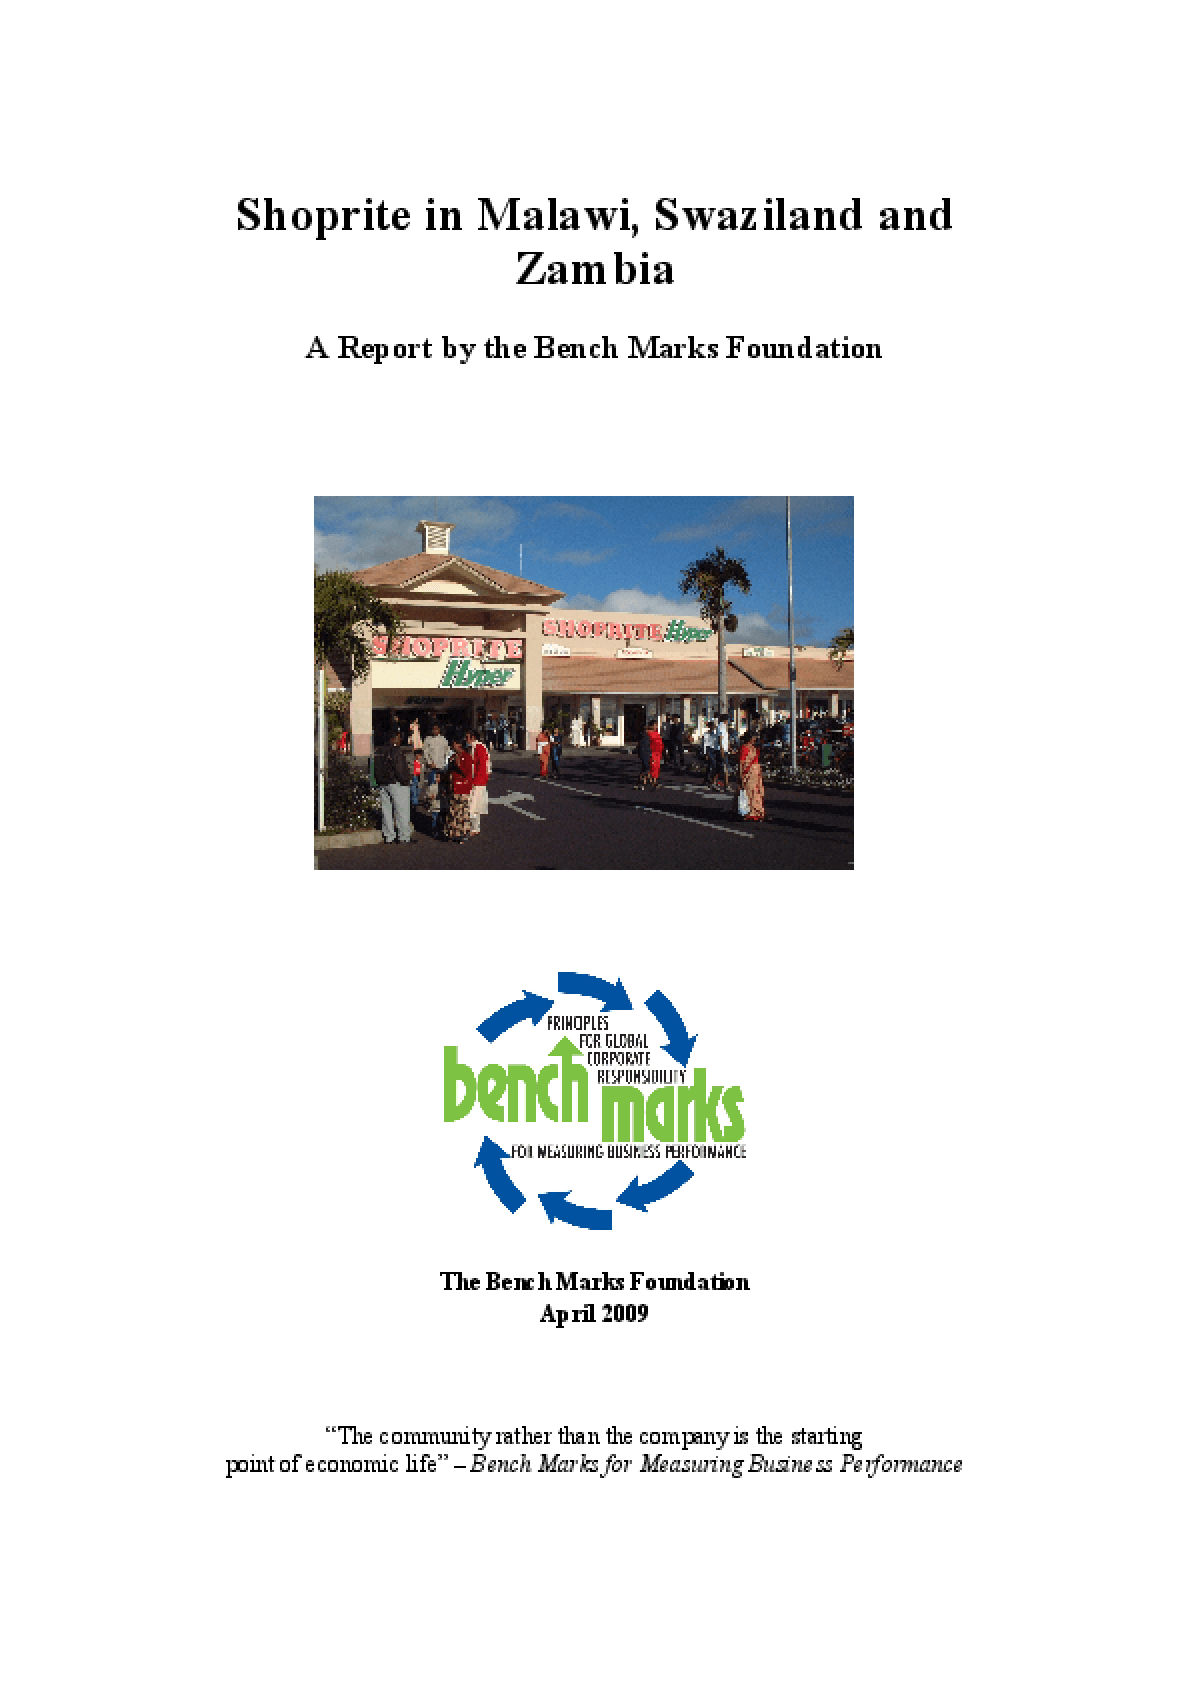 Shoprite in Malawi, Swaziland and Zambia: A Report by the Bench Marks Foundation